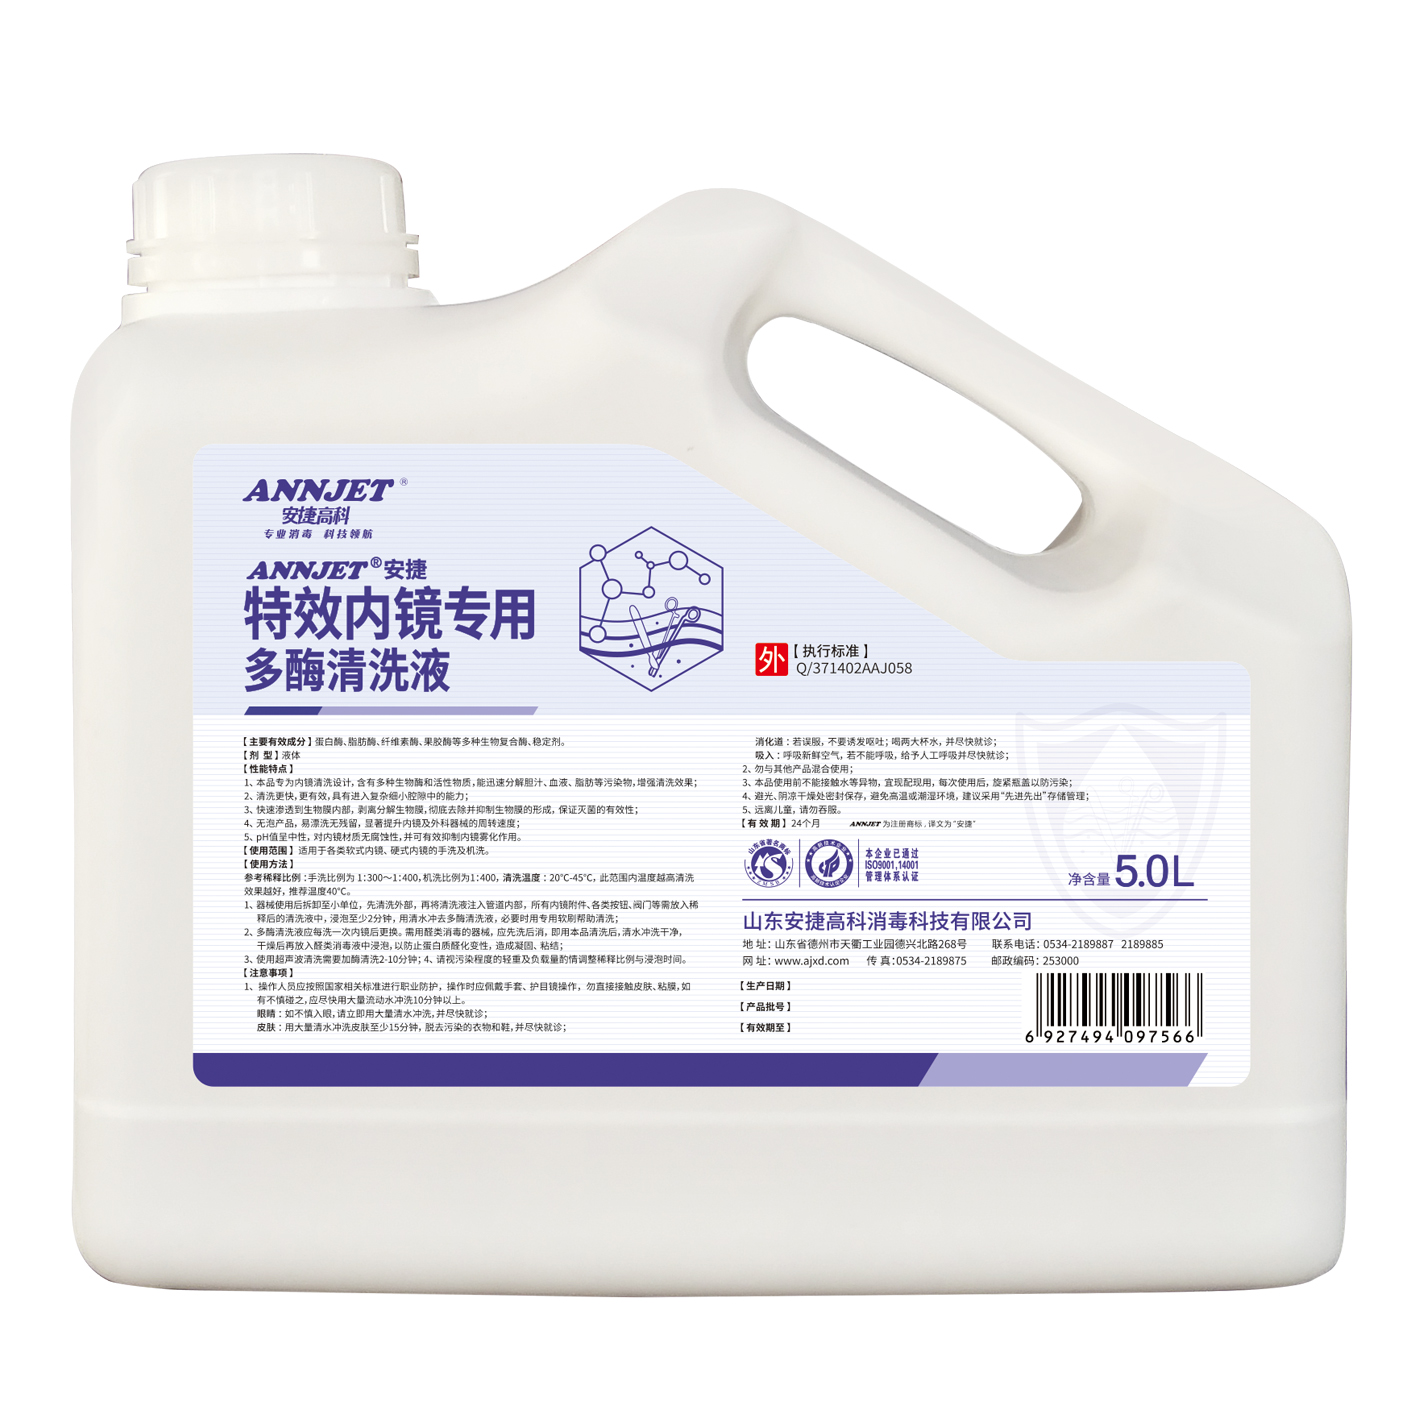 ANNJET special multi-enzyme cleaning solution for endoscope